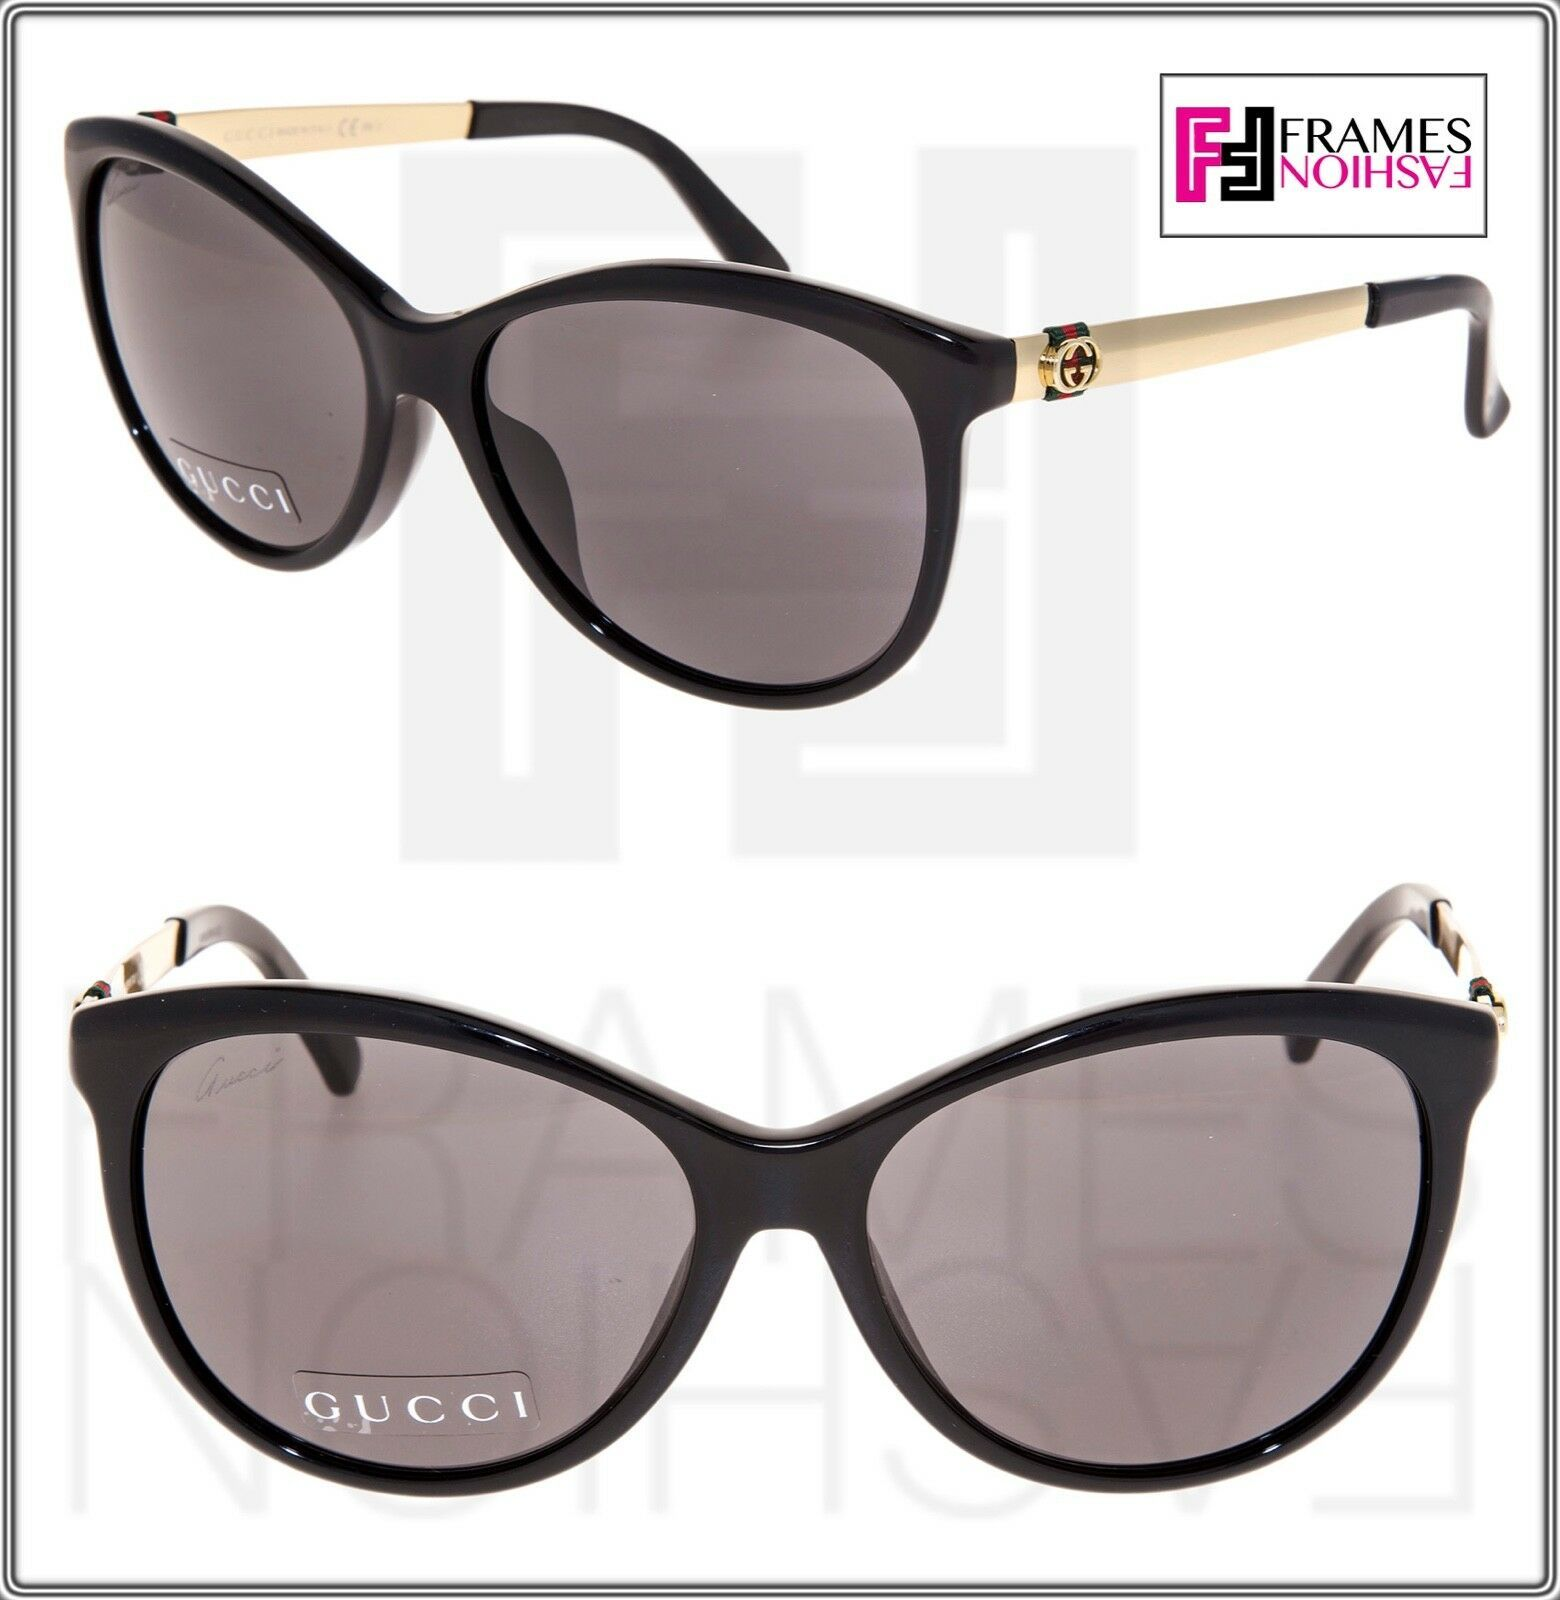 f26b635cfbe9 S l1600. S l1600. Previous. GUCCI GG3797FS Gold Black Stripe Butterfly Asian  Fit Metal Sunglasses ...